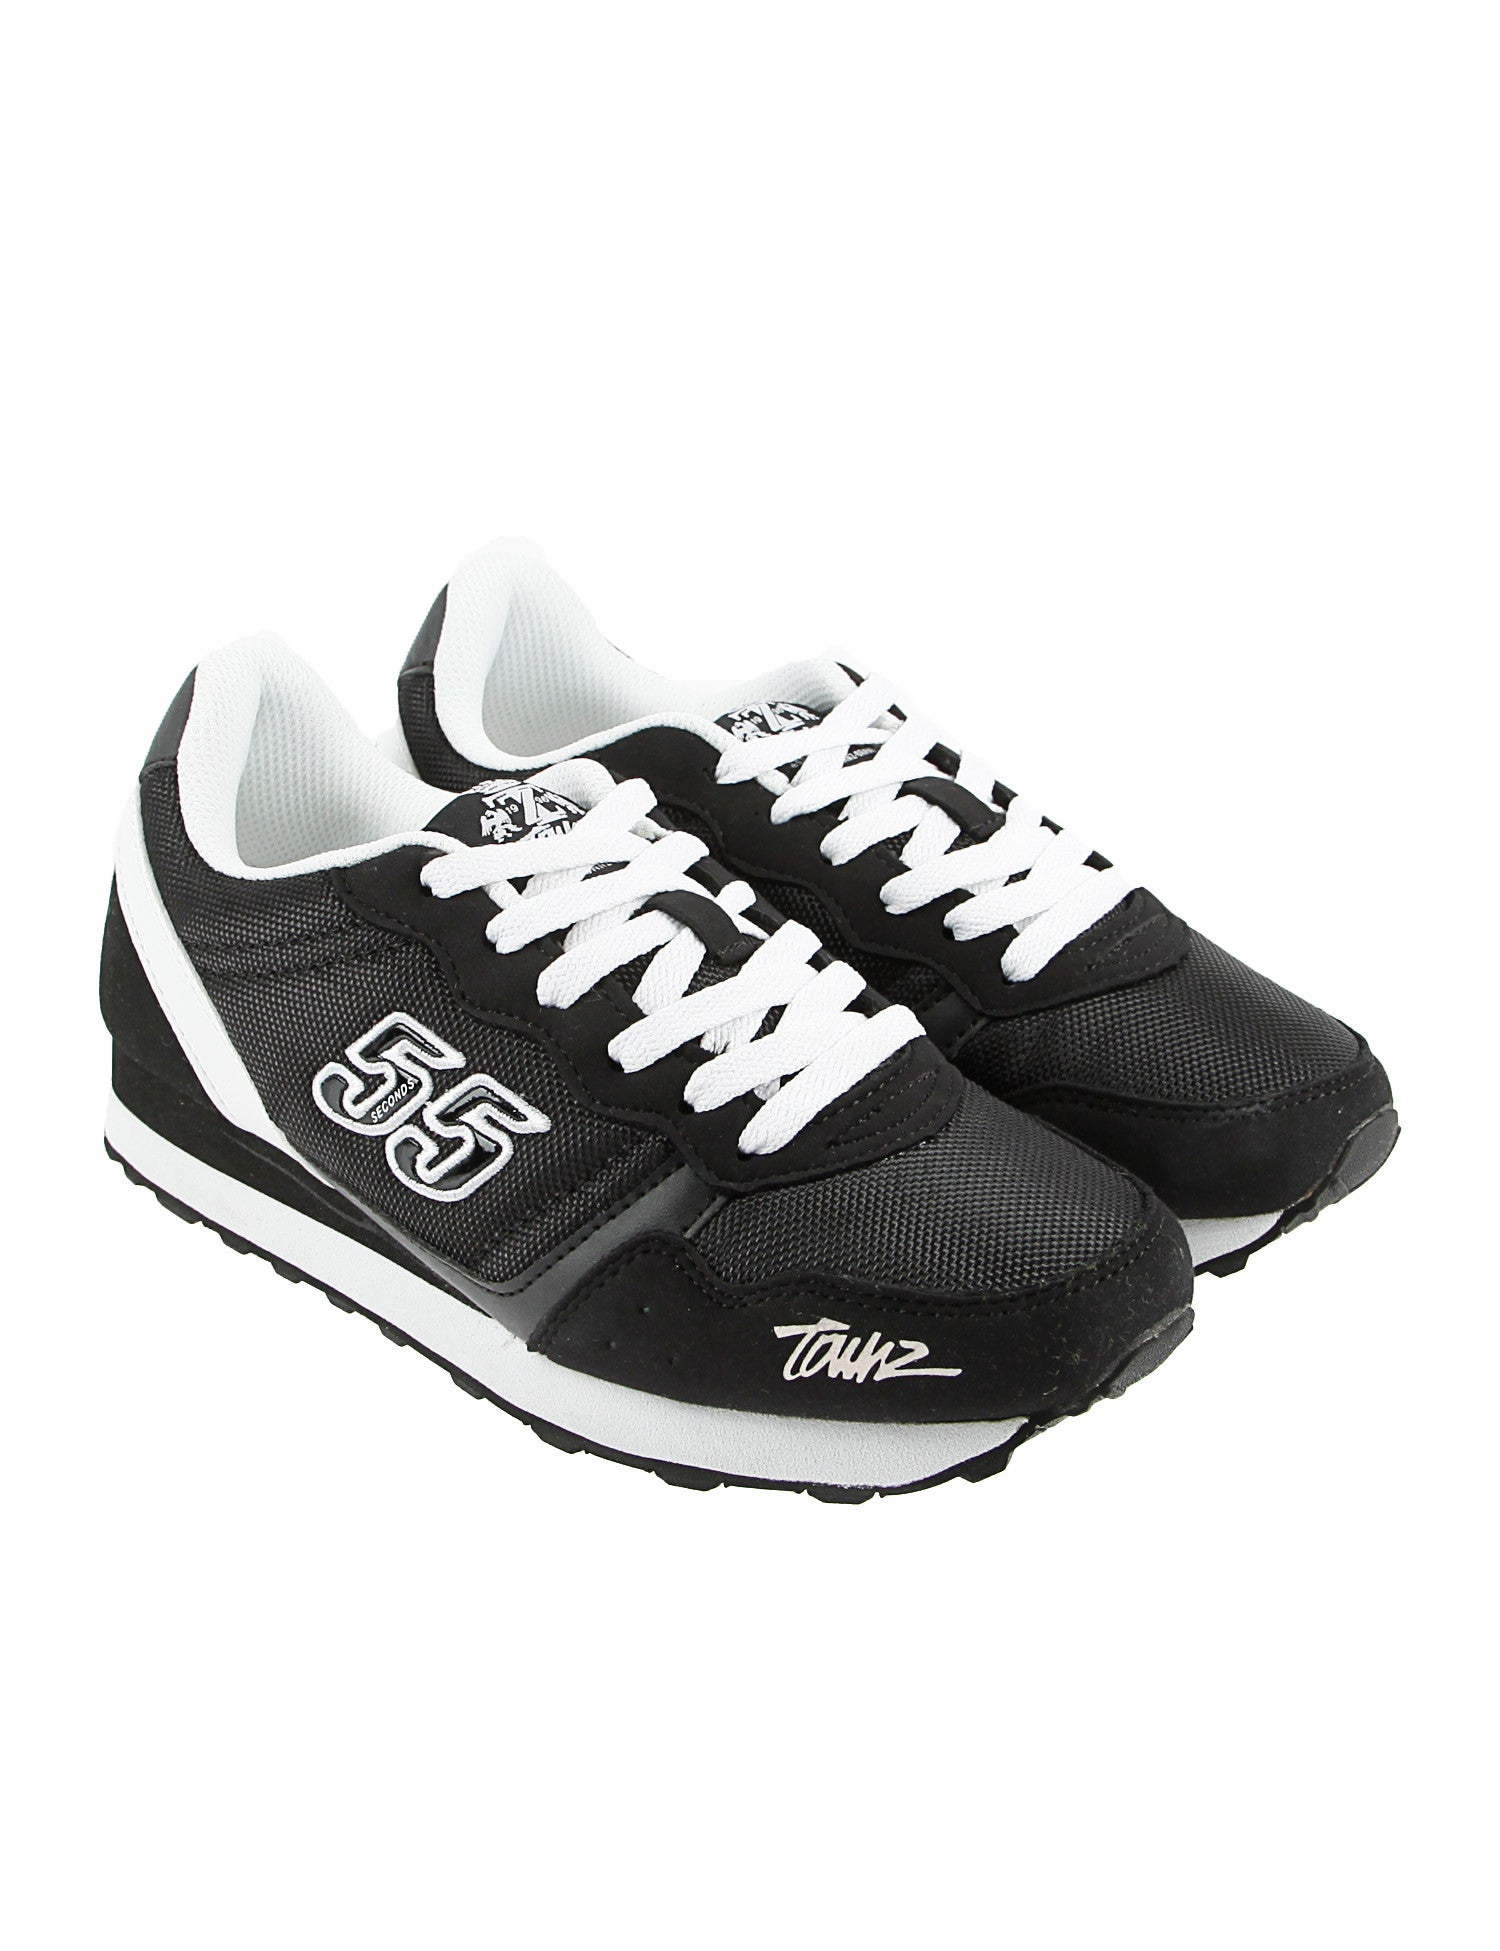 Townz Shoes G985 Black